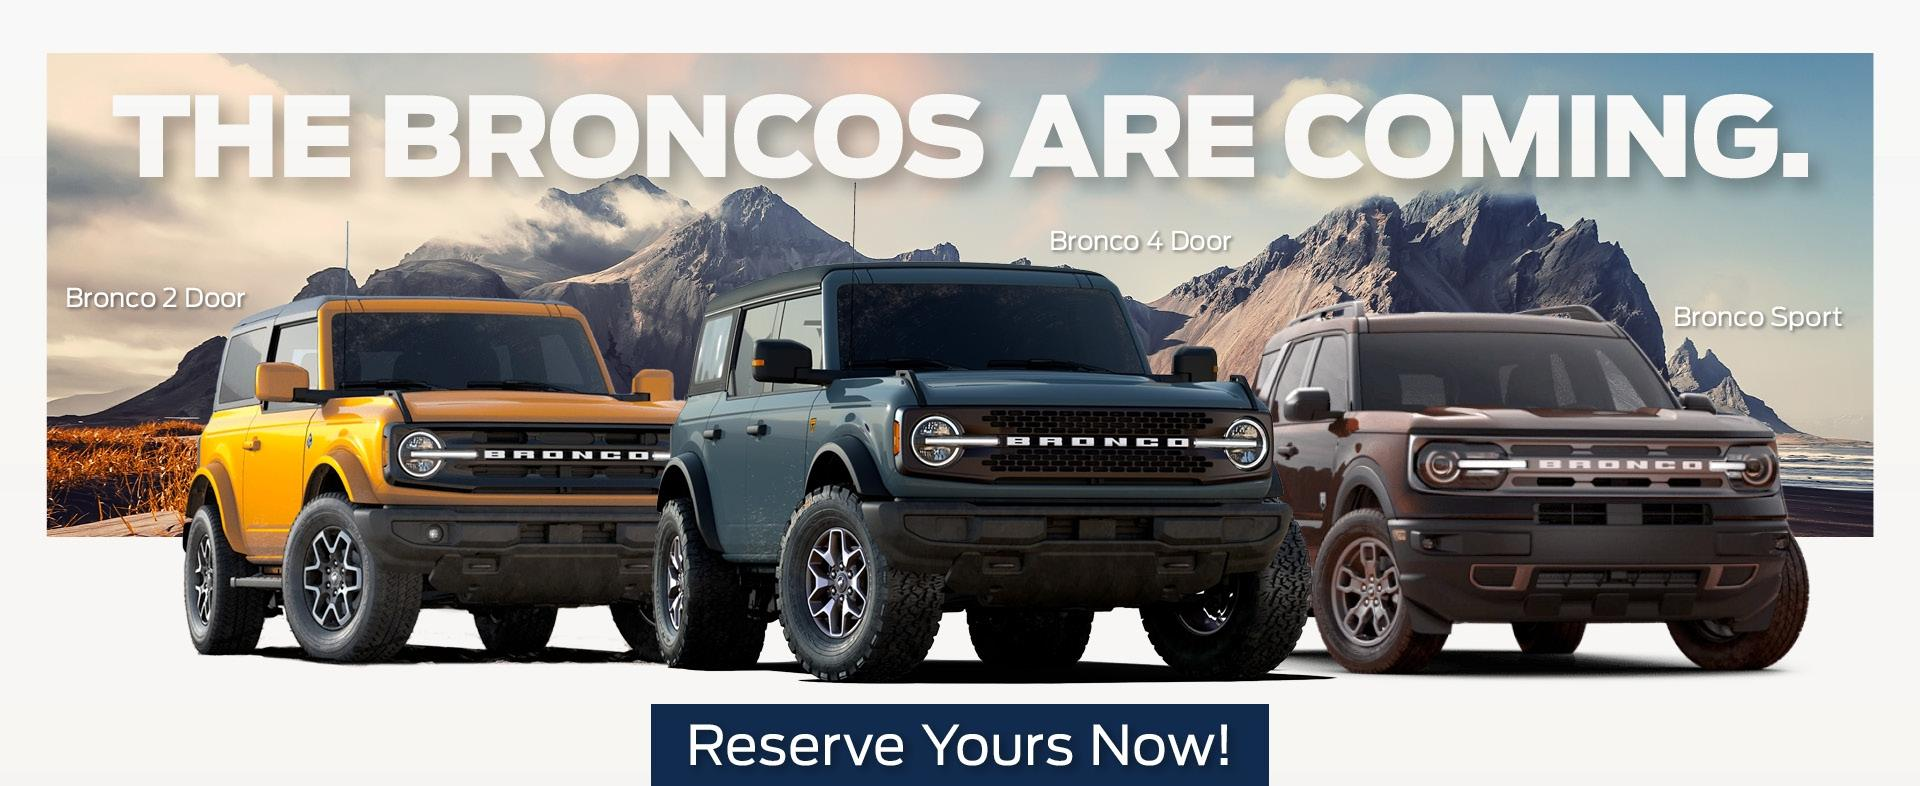 The Broncos Are Coming Banner